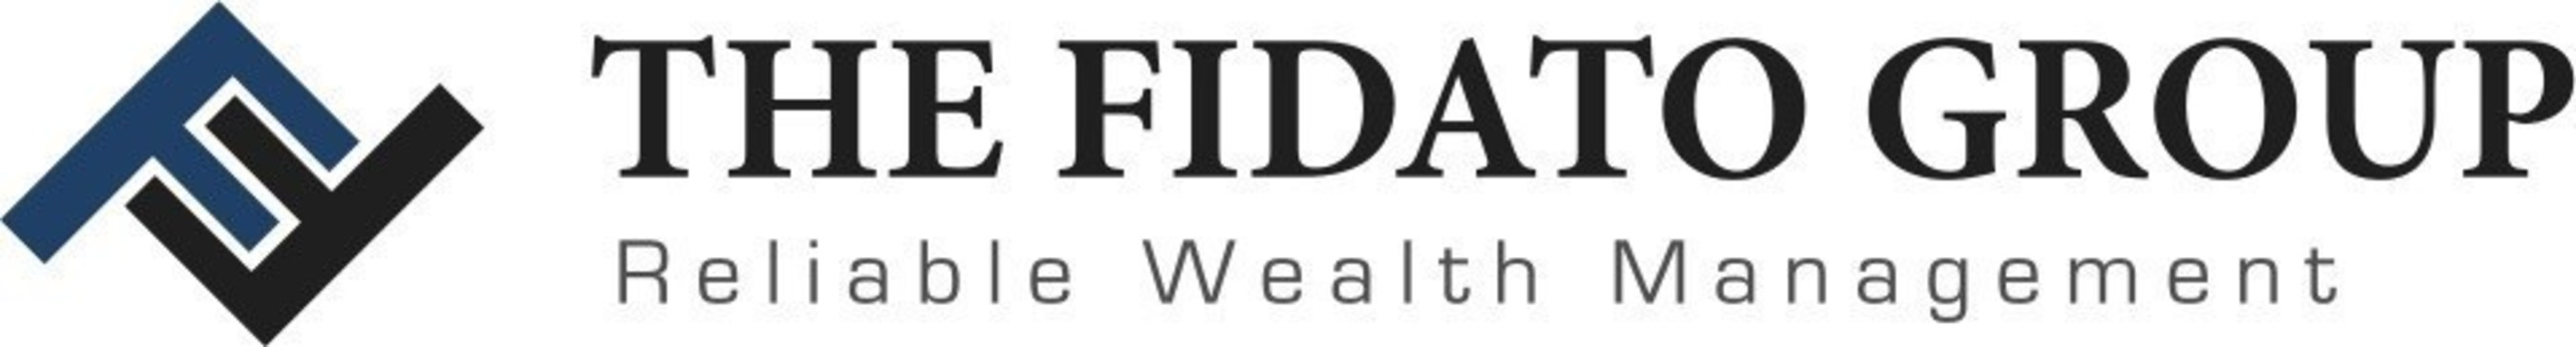 The Fidato Group Announces Retirement Financial Planning Course at Lorain County Community College,